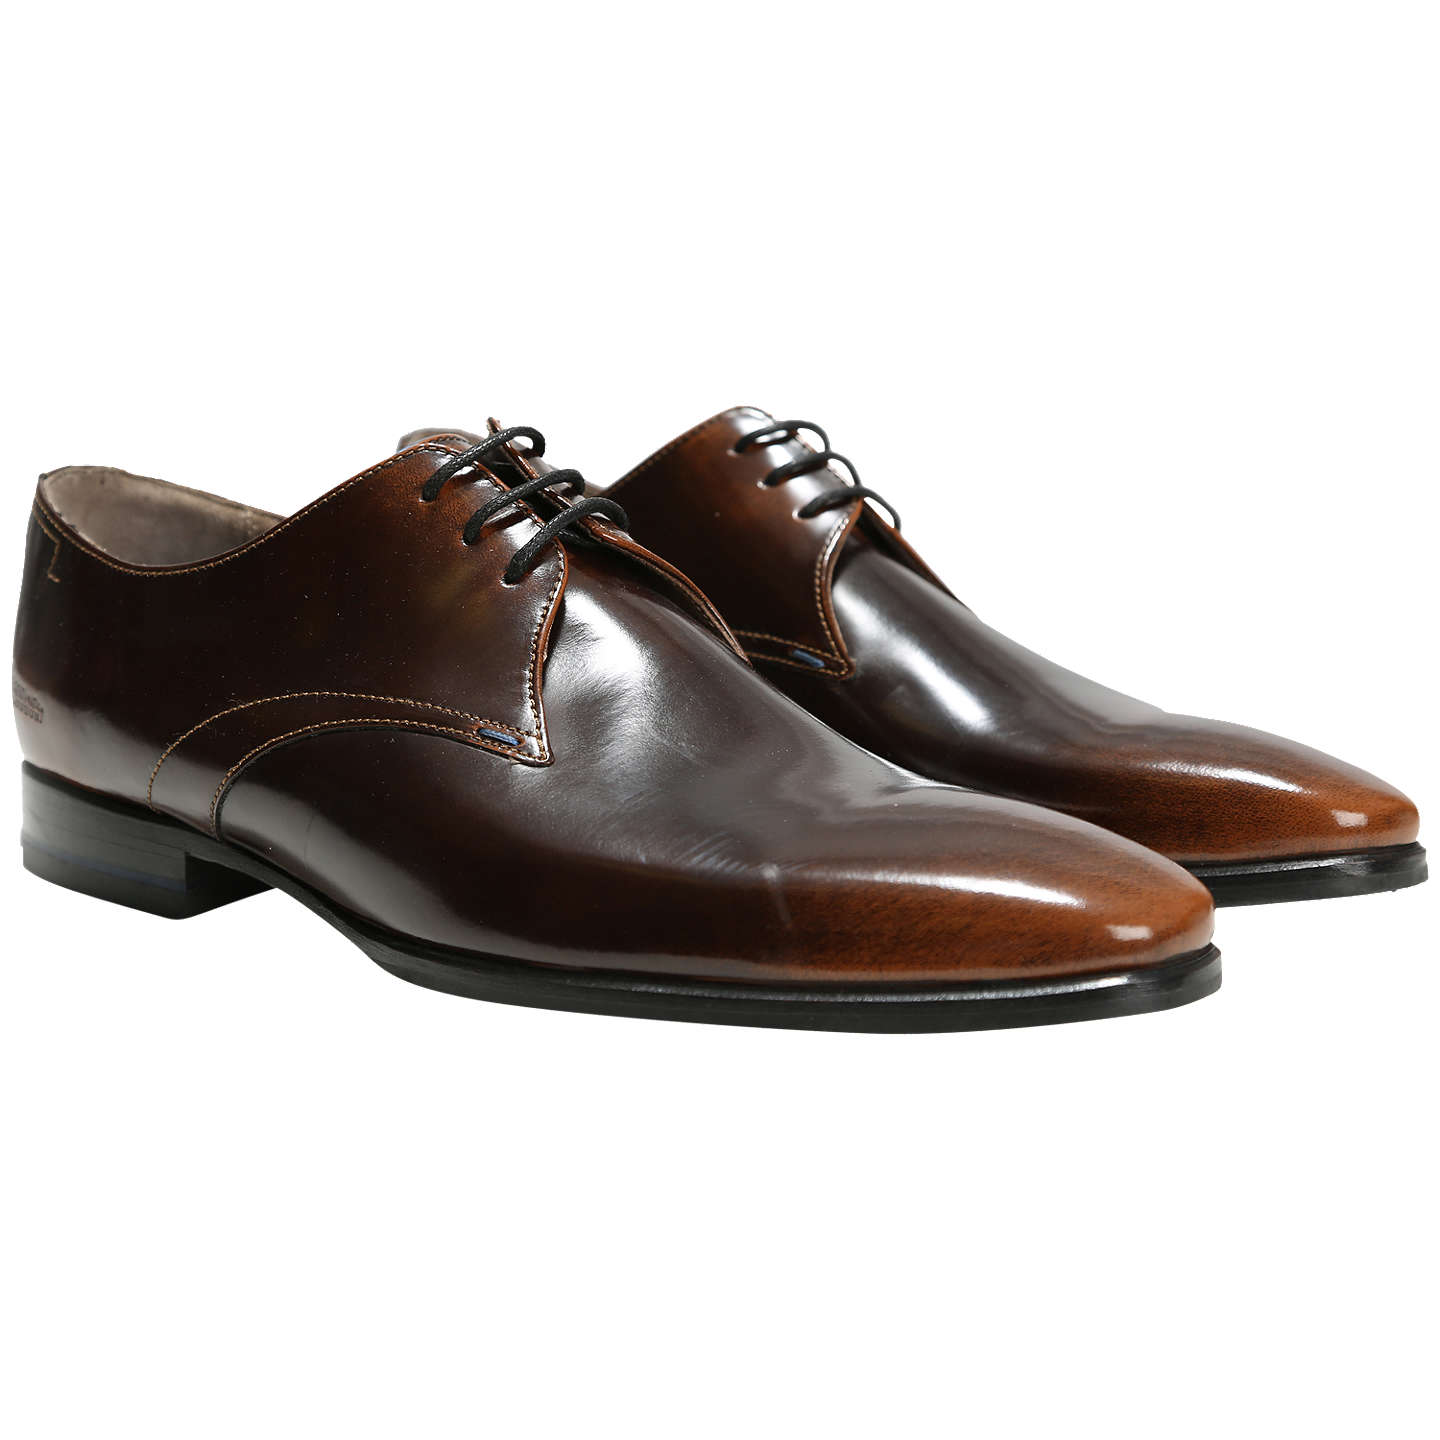 BuyOliver Sweeney Tuckley Derby Shoes, Brown, 7 Online at johnlewis.com ...